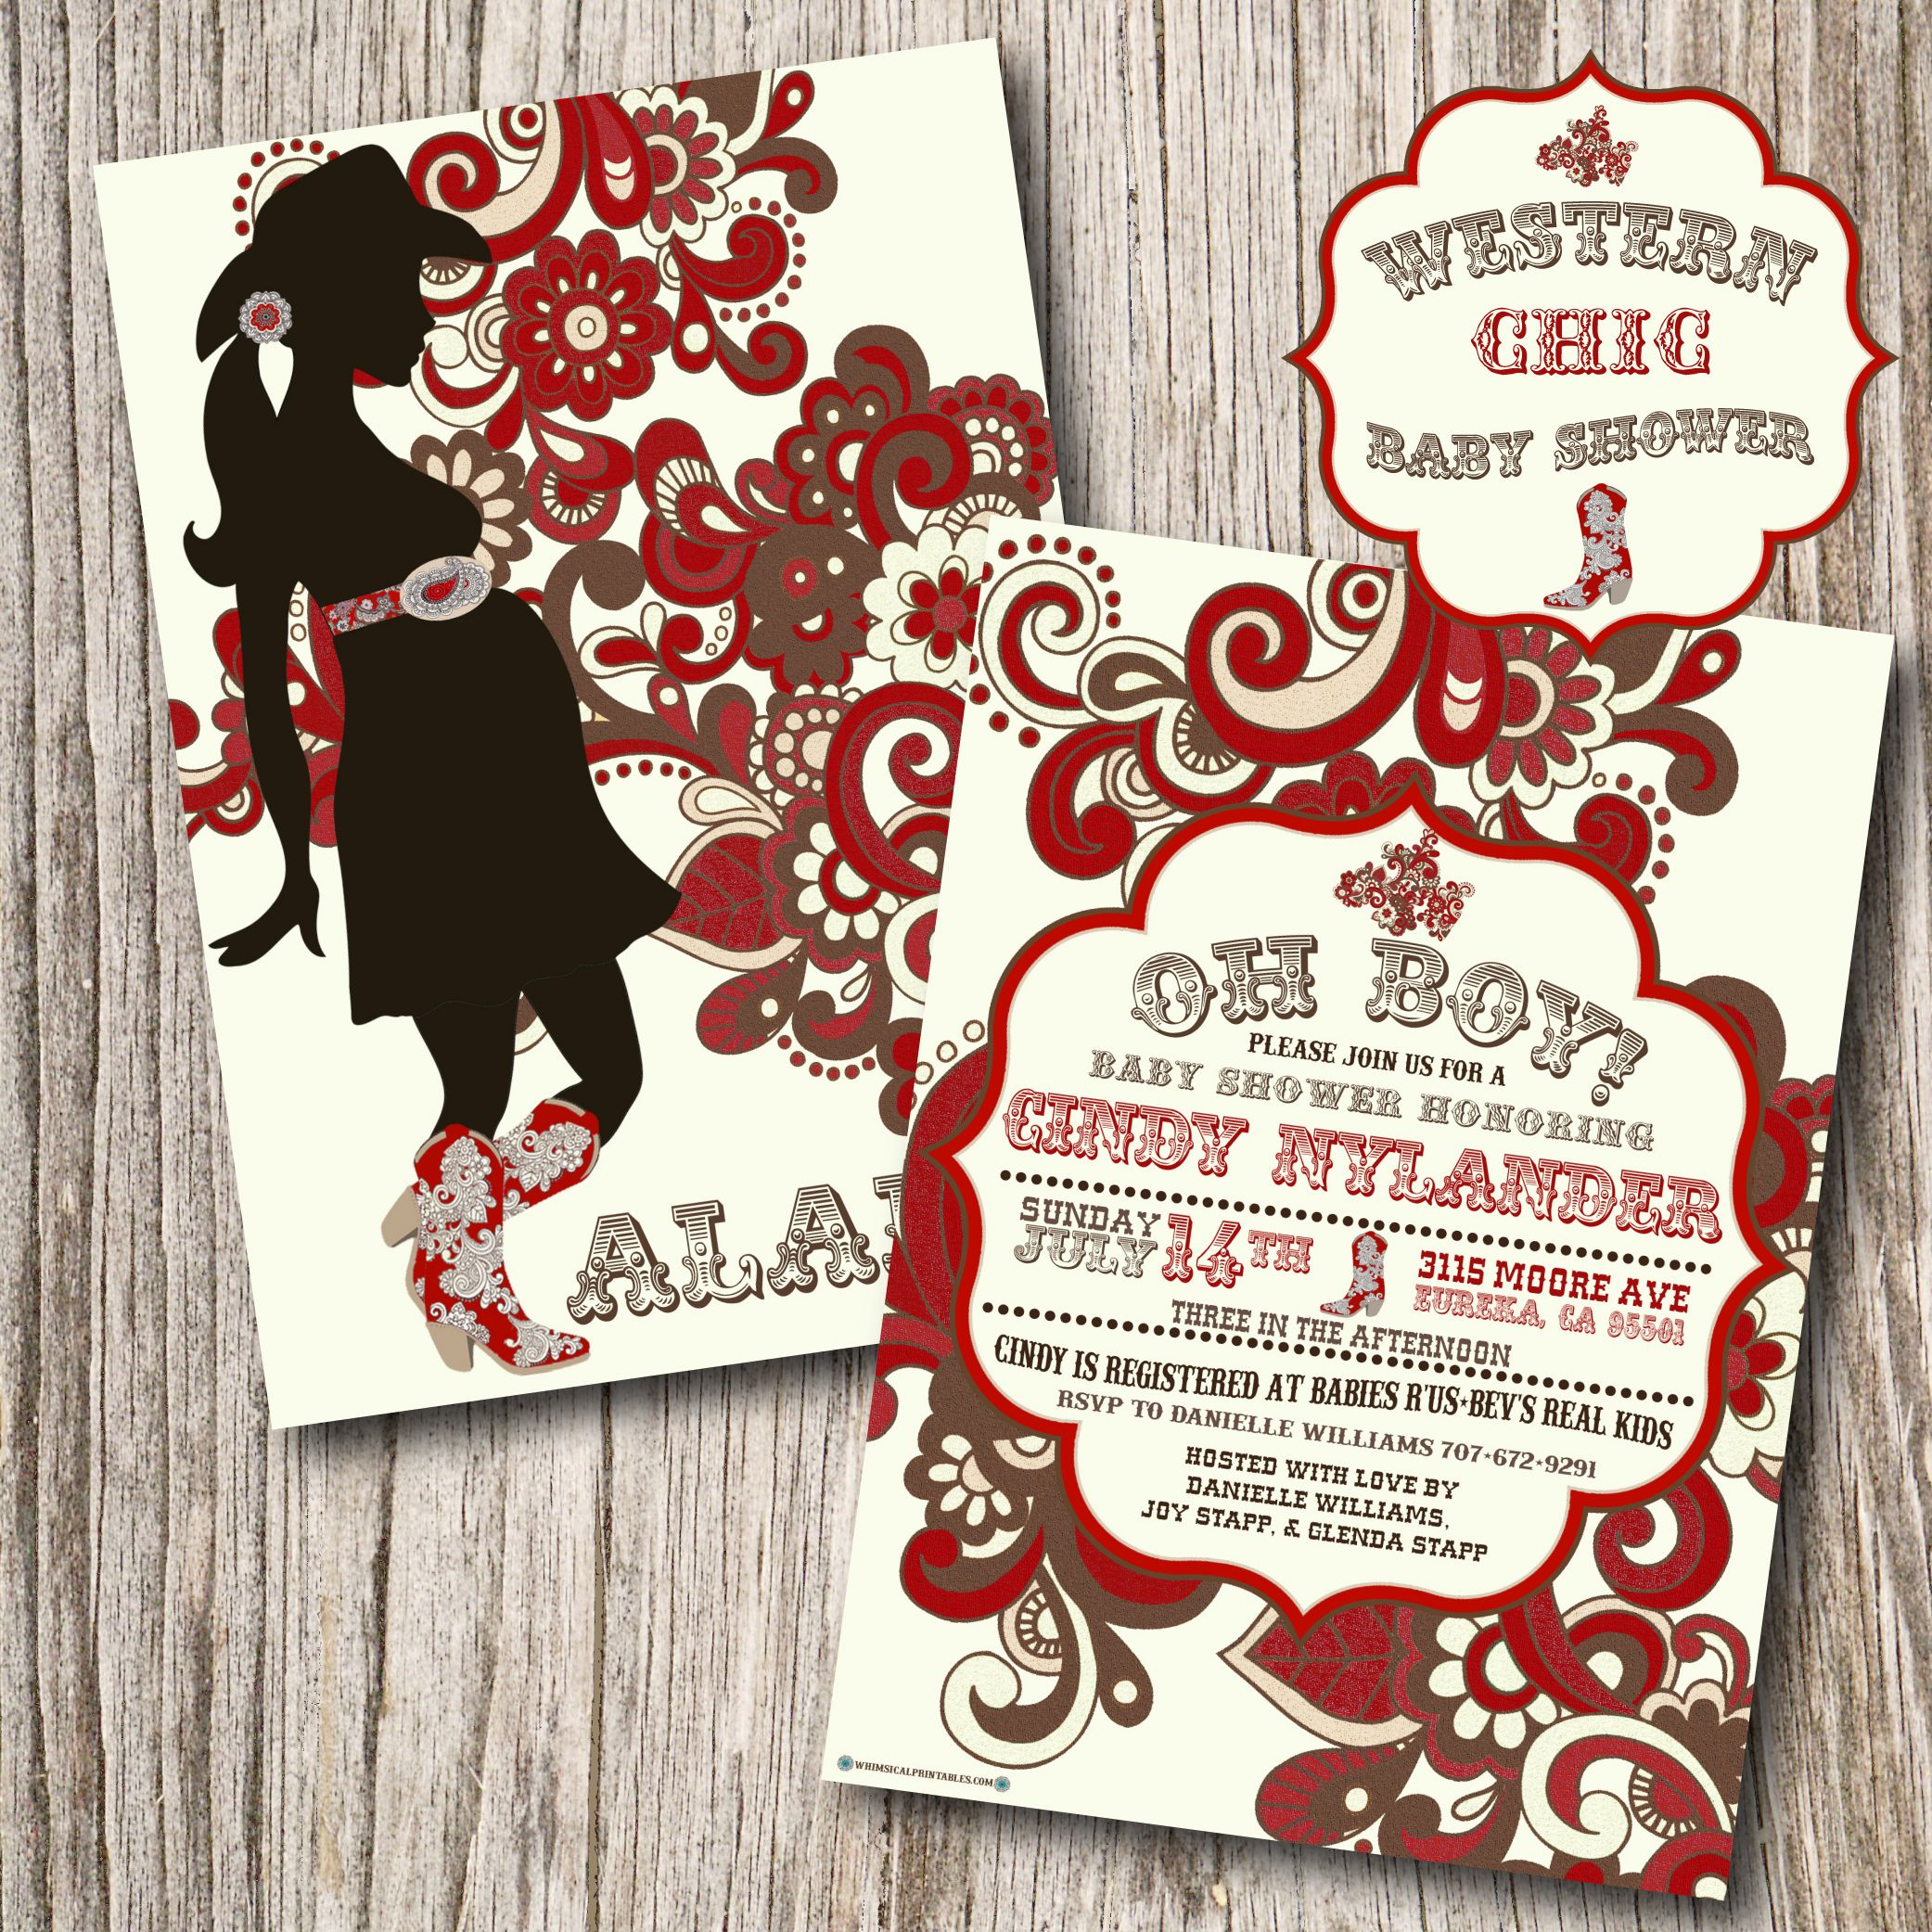 Lovely Natural Western Baby Shower Theme Ideas And Cowboy Themed Baby Shower  Invitation Wording